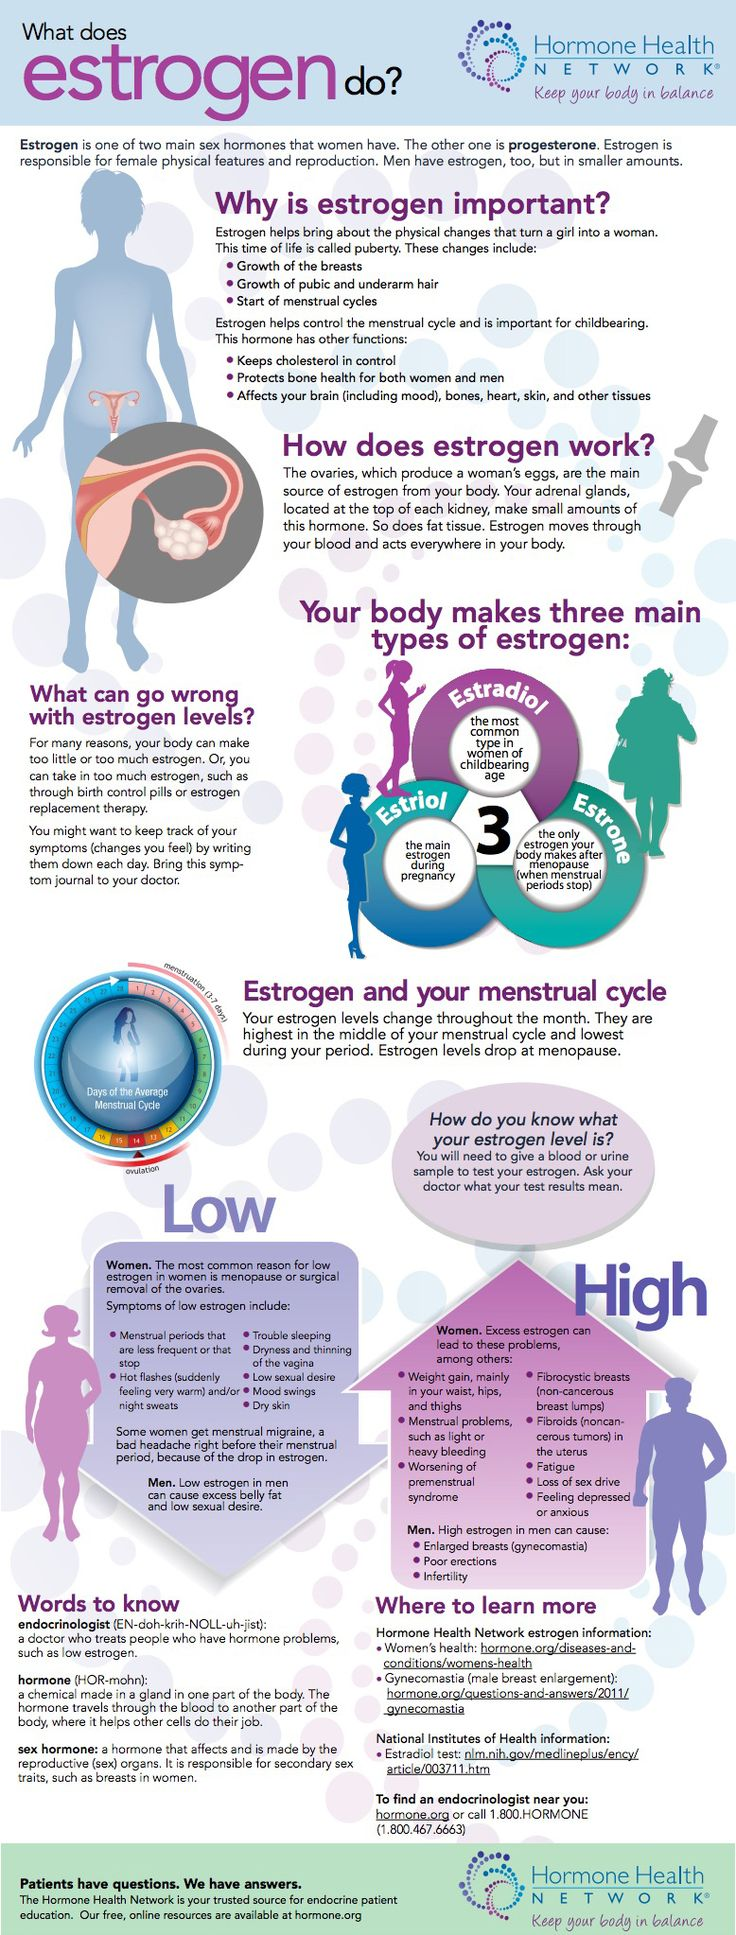 Estrogen levels decrease during perimenopause but there are healthy foods you can eat to combat lower estrogen production.